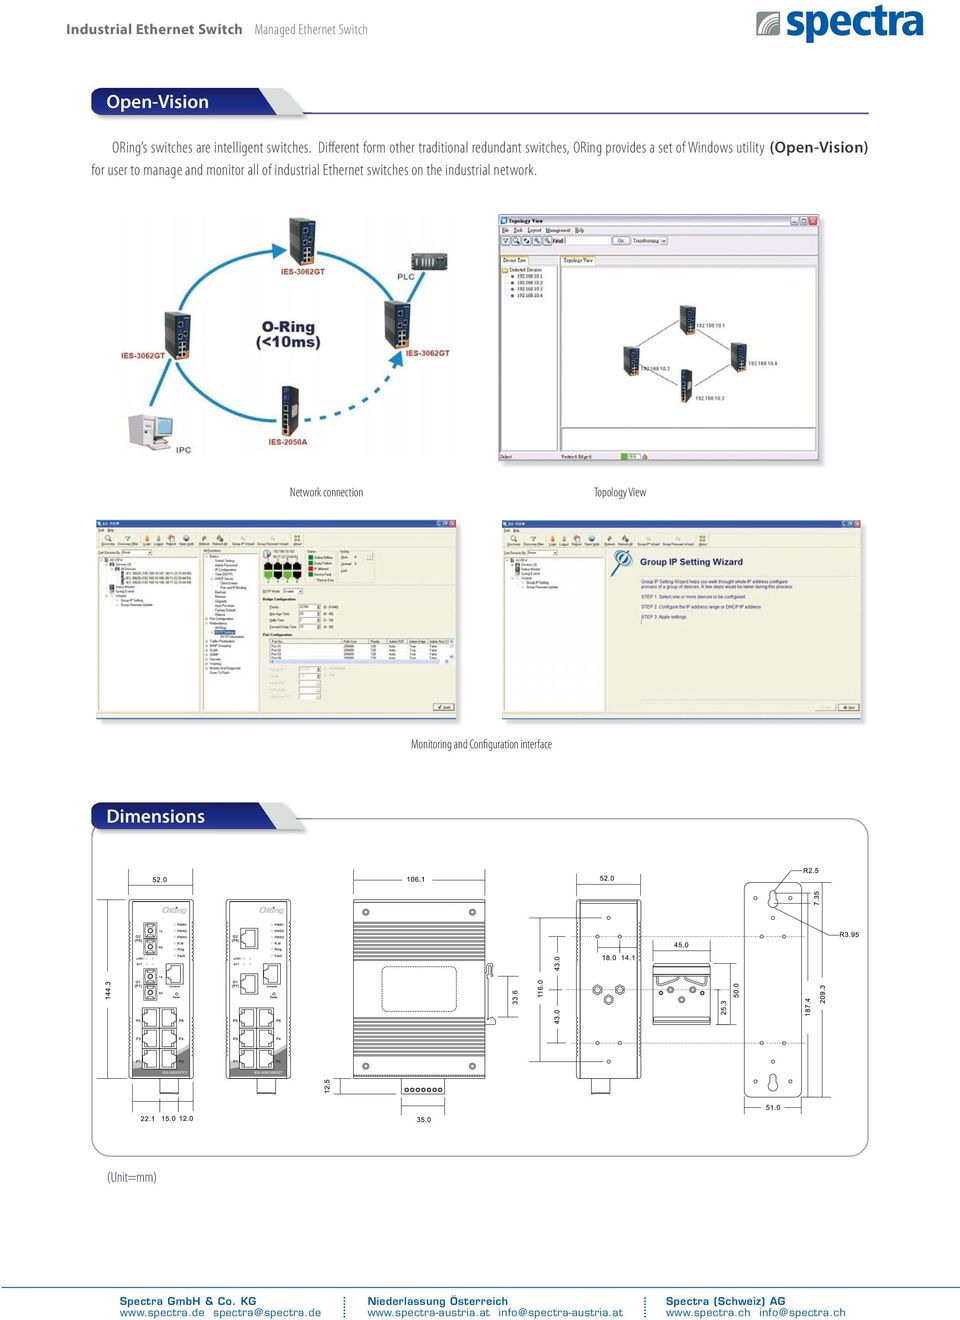 utility (Open-Vision) for user to manage and monitor all of industrial Ethernet